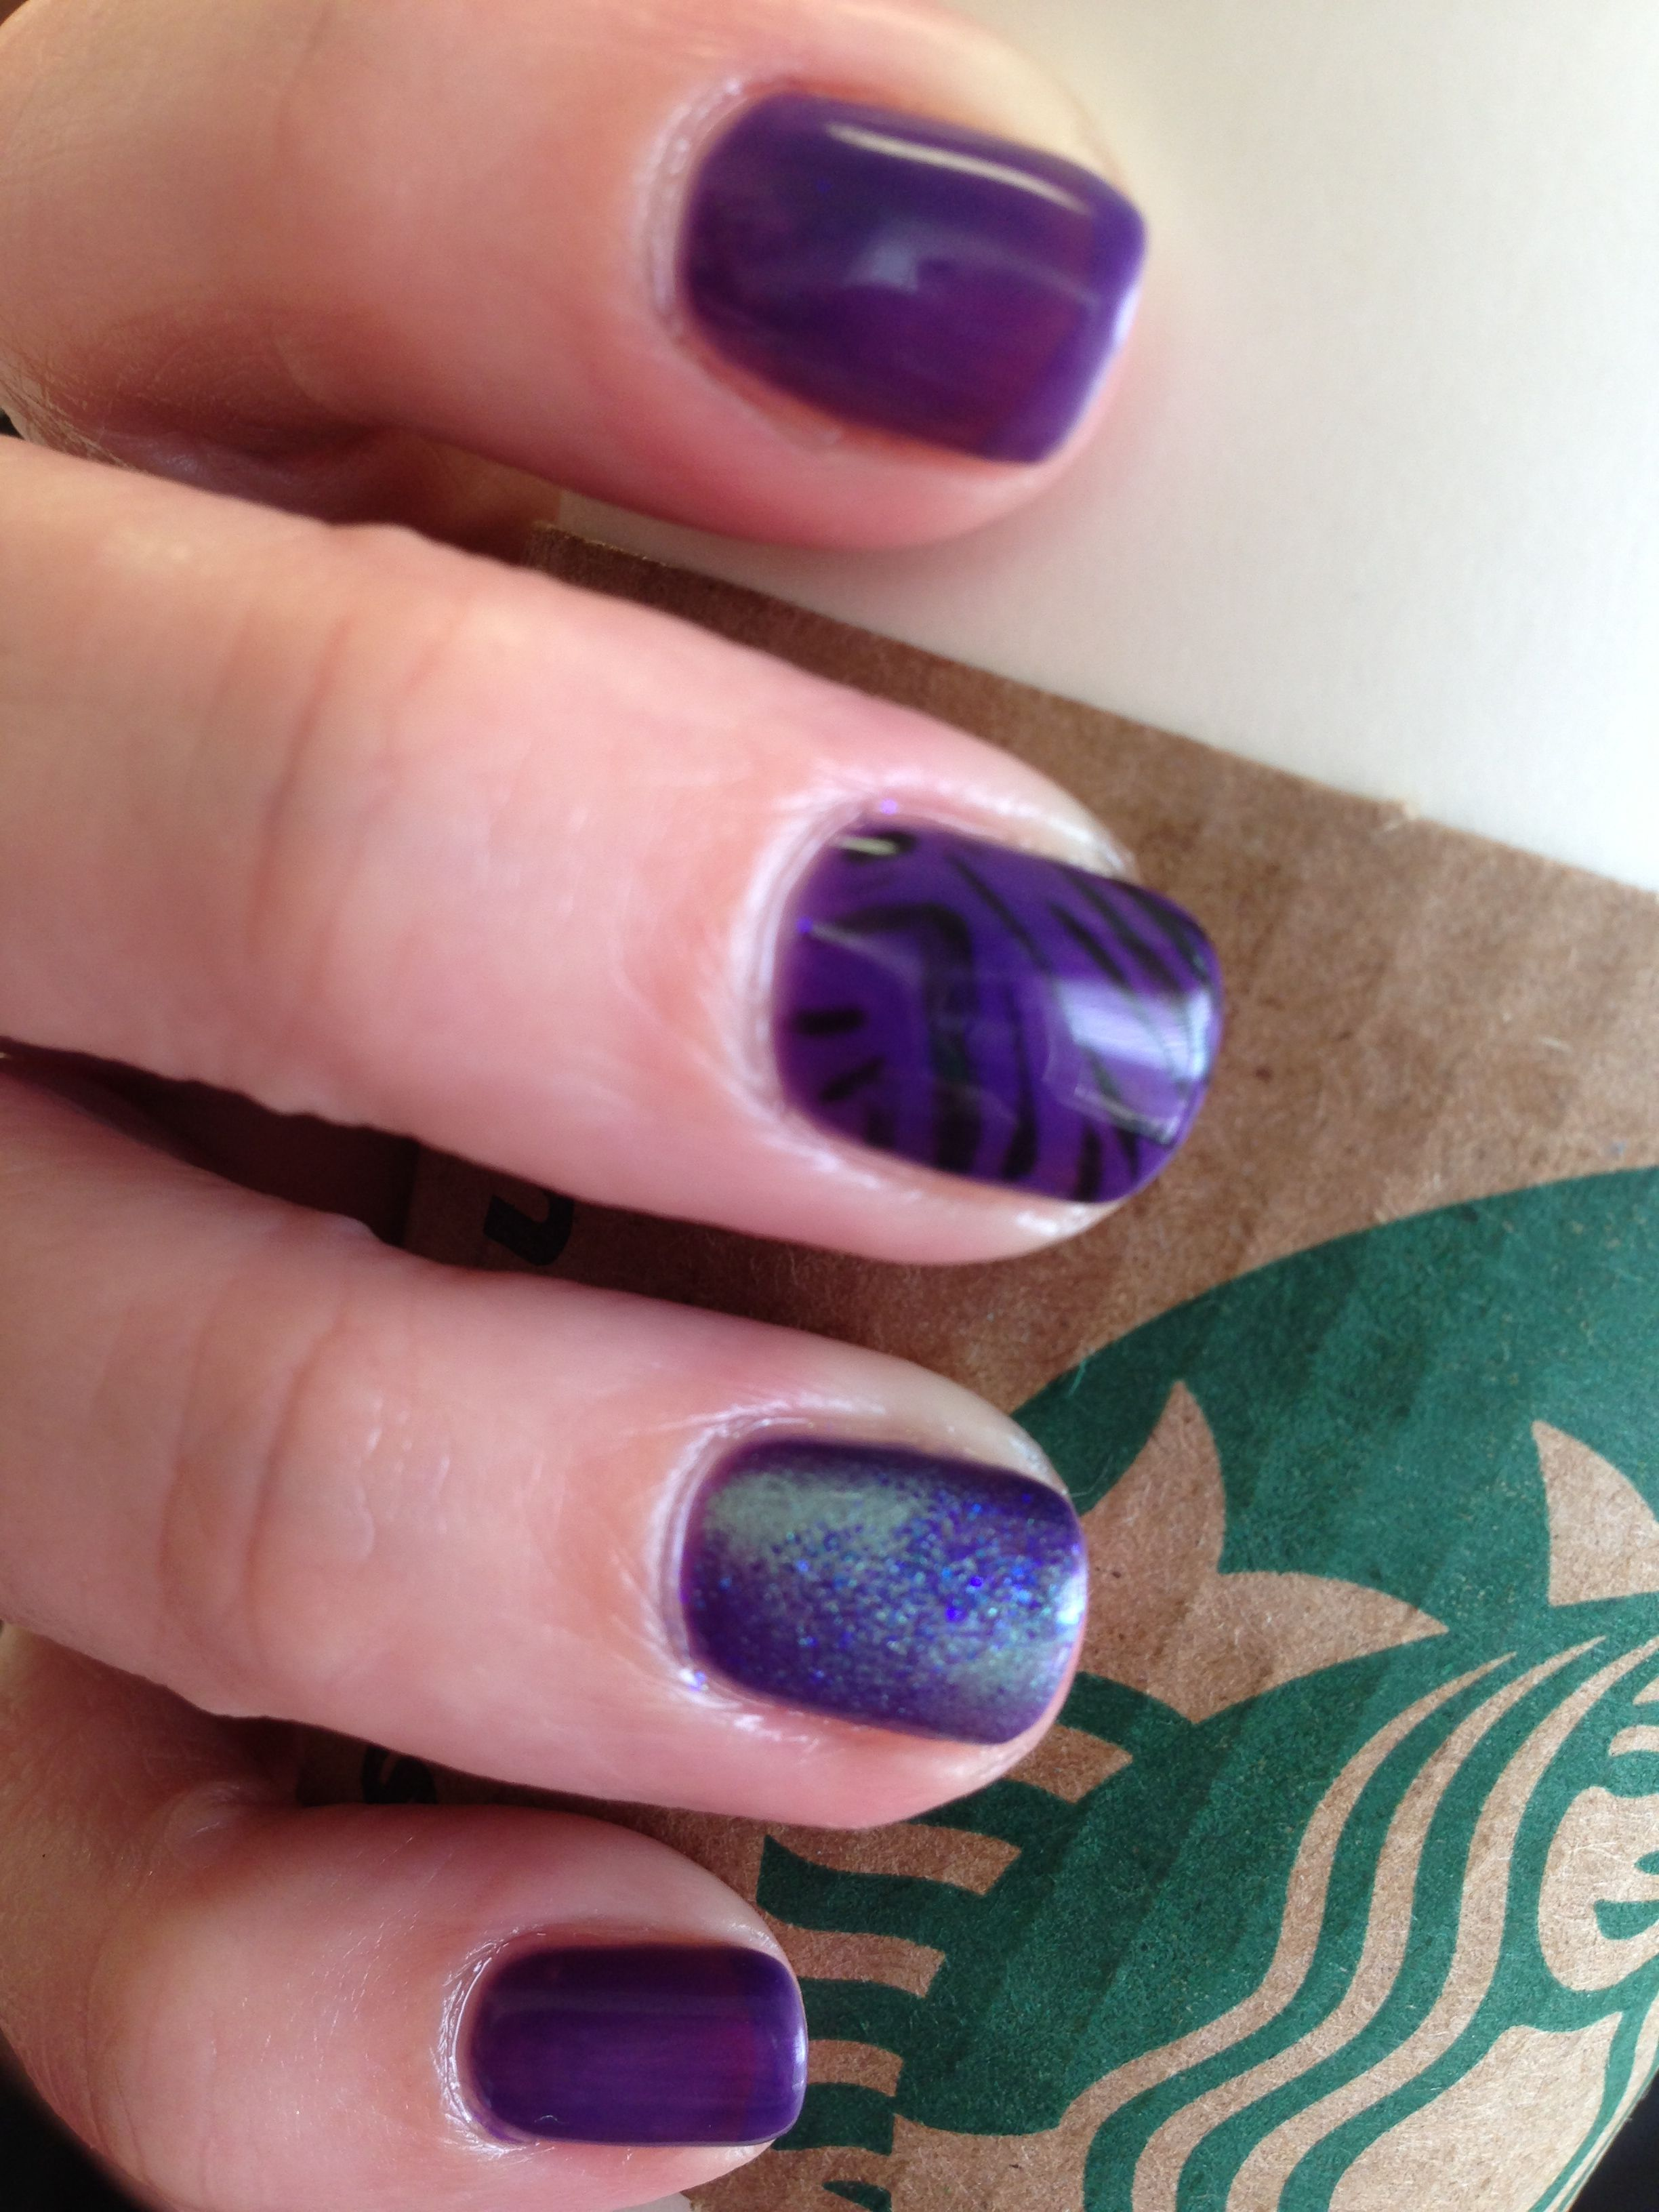 New Cnd Shellac summer color, Grape Gum with Party Nails. Love this!